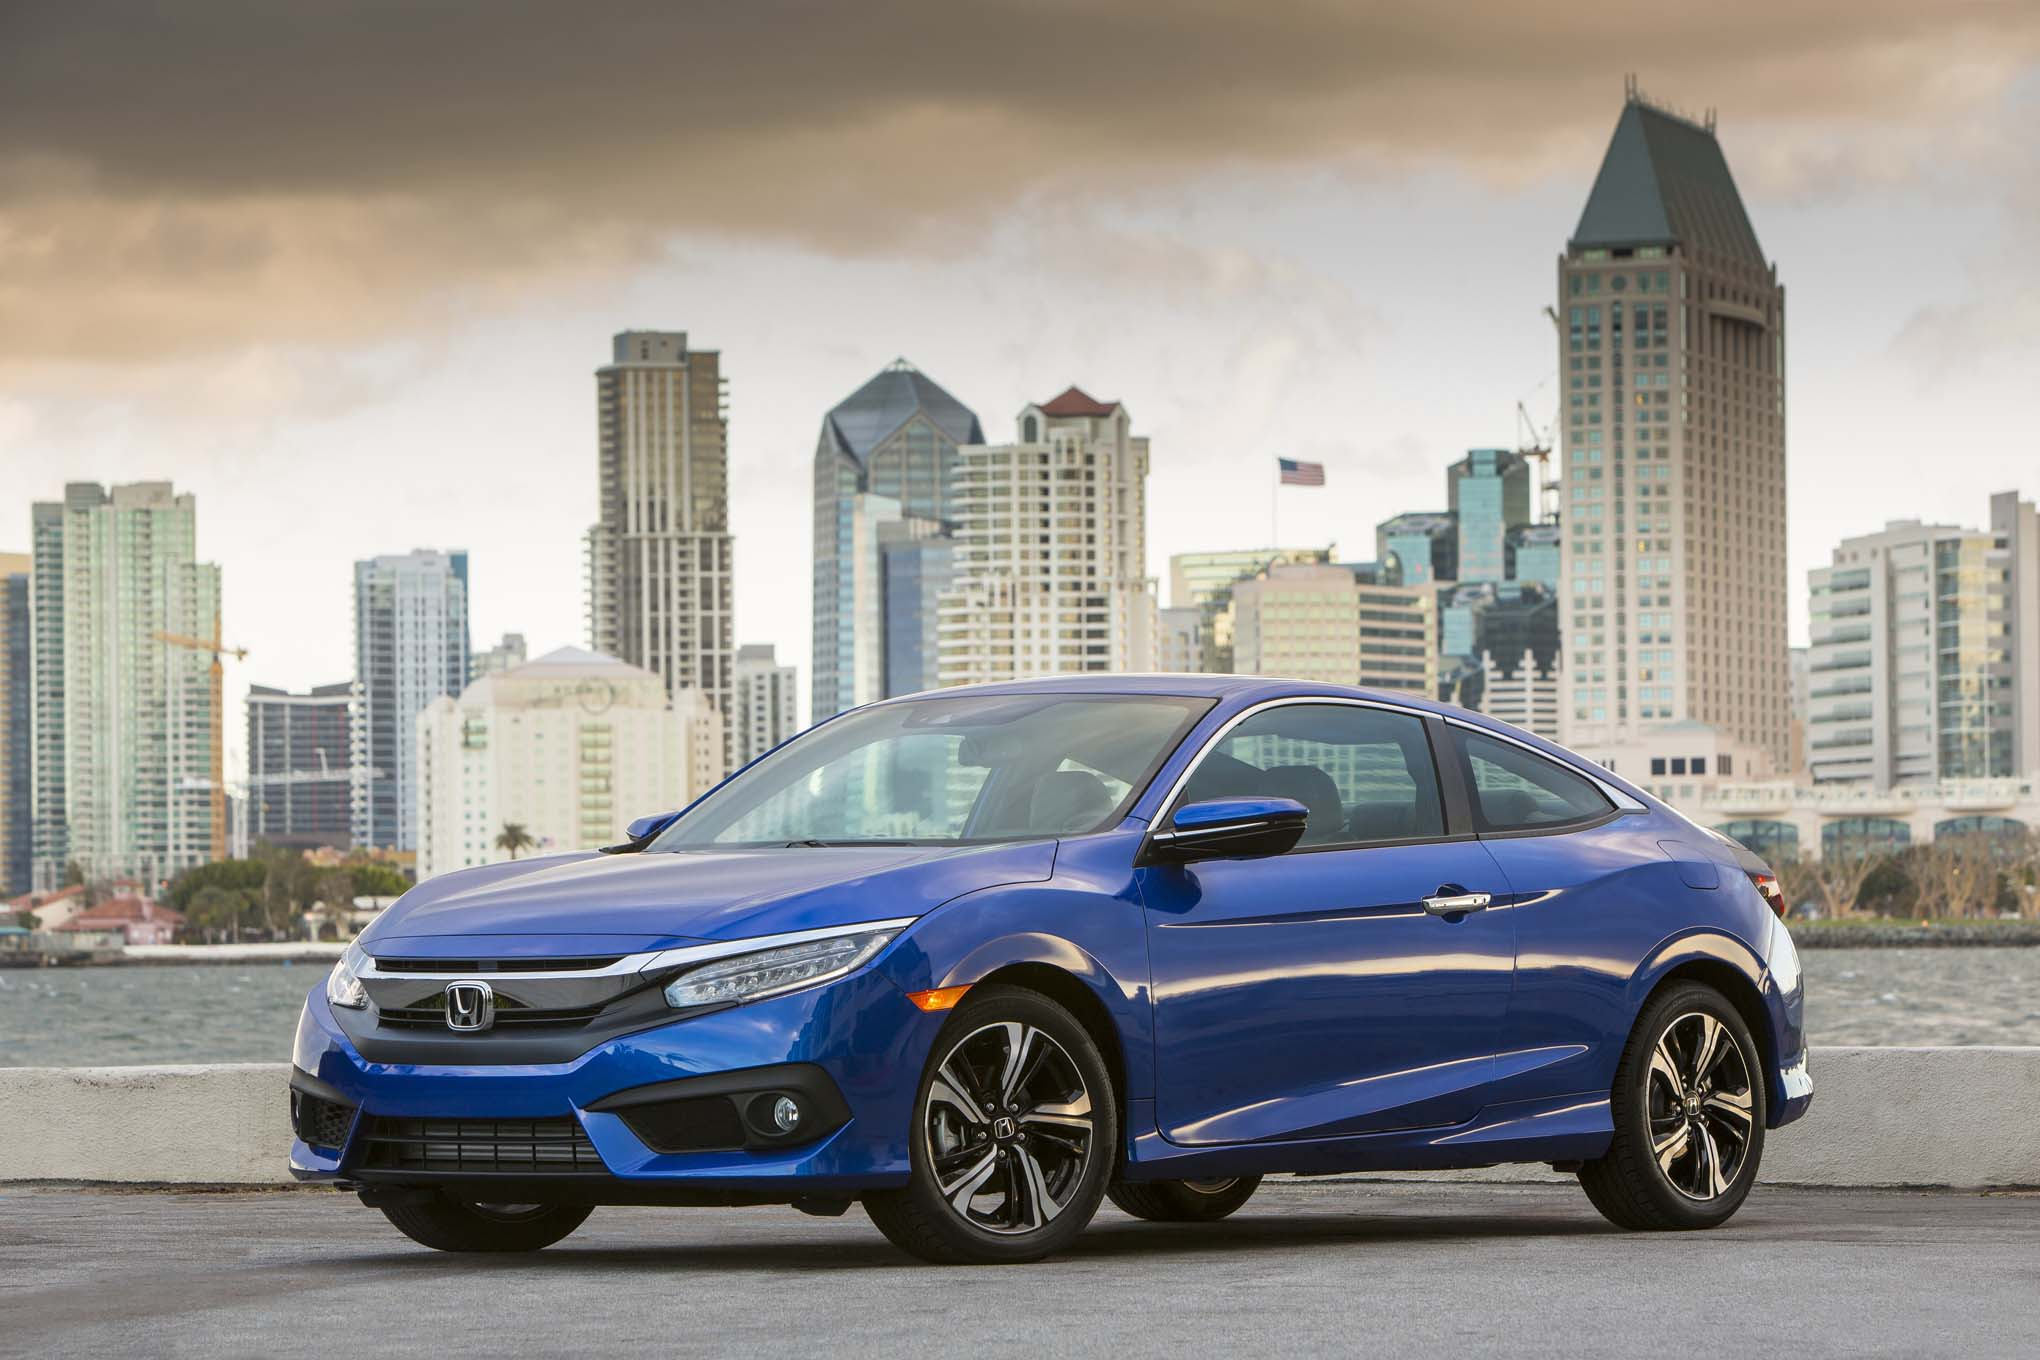 2017 Honda Civic -  KBB.com 10 Coolest Cars: Comfortable, fun to drive and feature-packed, the well-rounded Civic also delivers all the refinement, reliability and reputation that typically accompany the Honda badge.